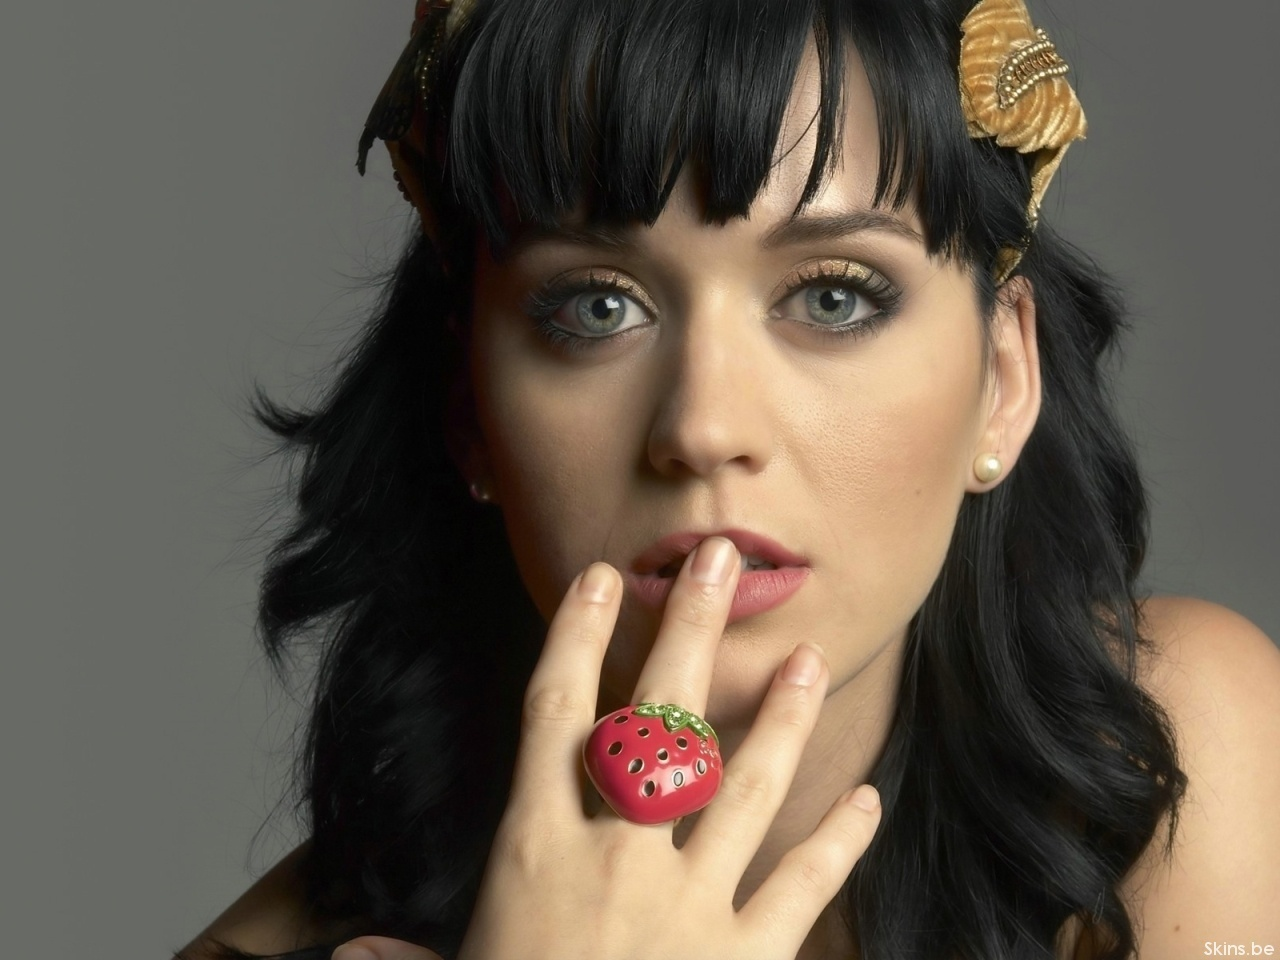 http://images2.fanpop.com/images/photos/6500000/Katy-katy-perry-6564170-1280-960.jpg